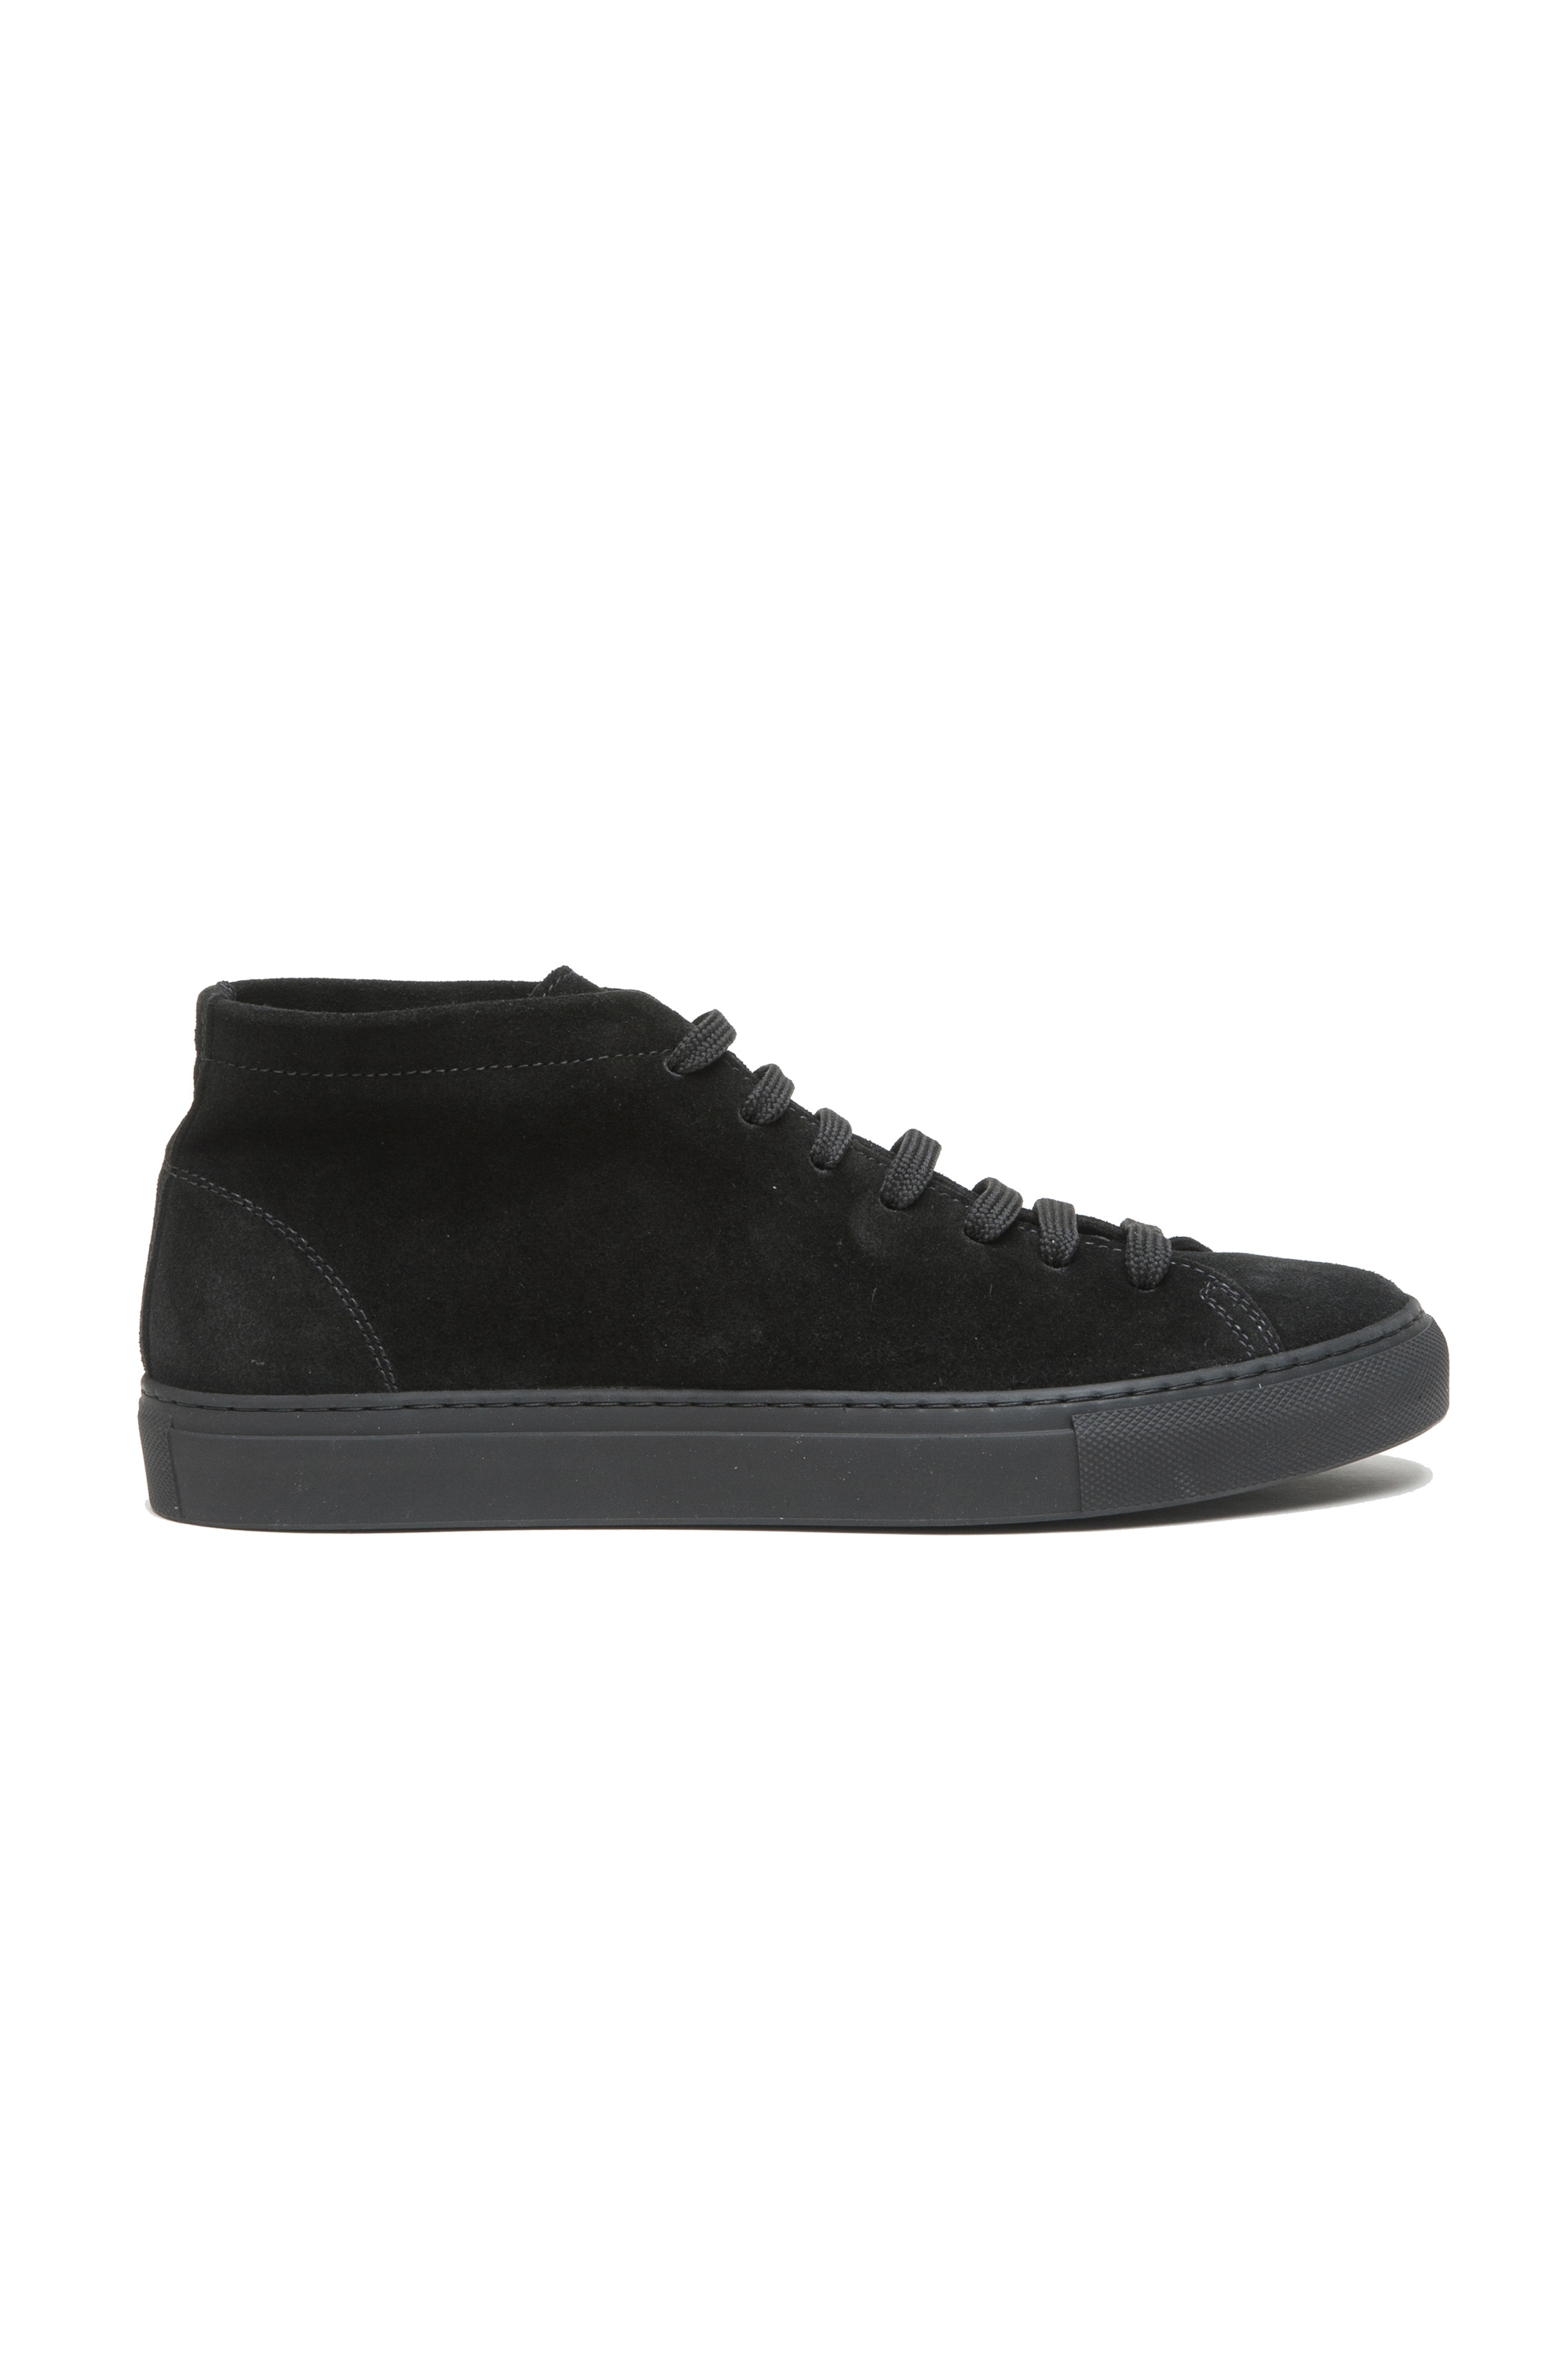 SBU 02966_2020AW Black mid top lace up sneakers in suede leather 01